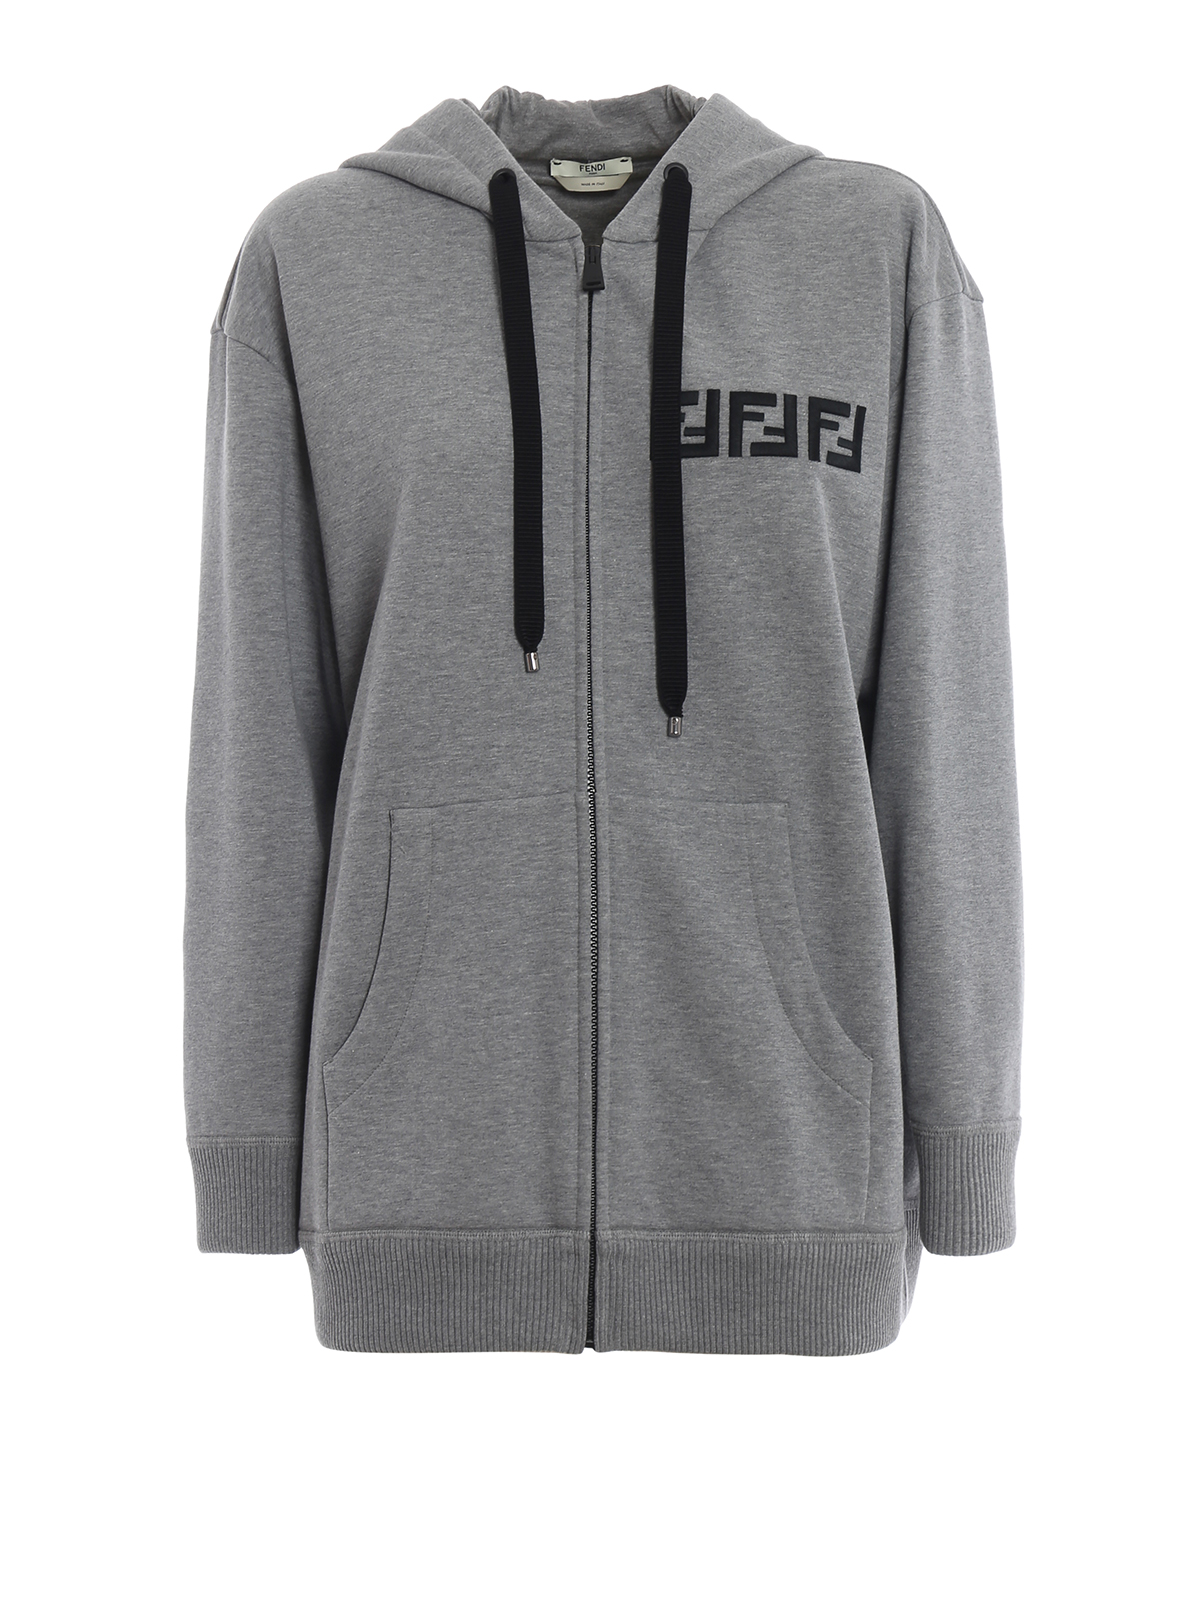 8b033def3 Fendi - FF embroidery and multicolour beads hoodie - Sweatshirts ...